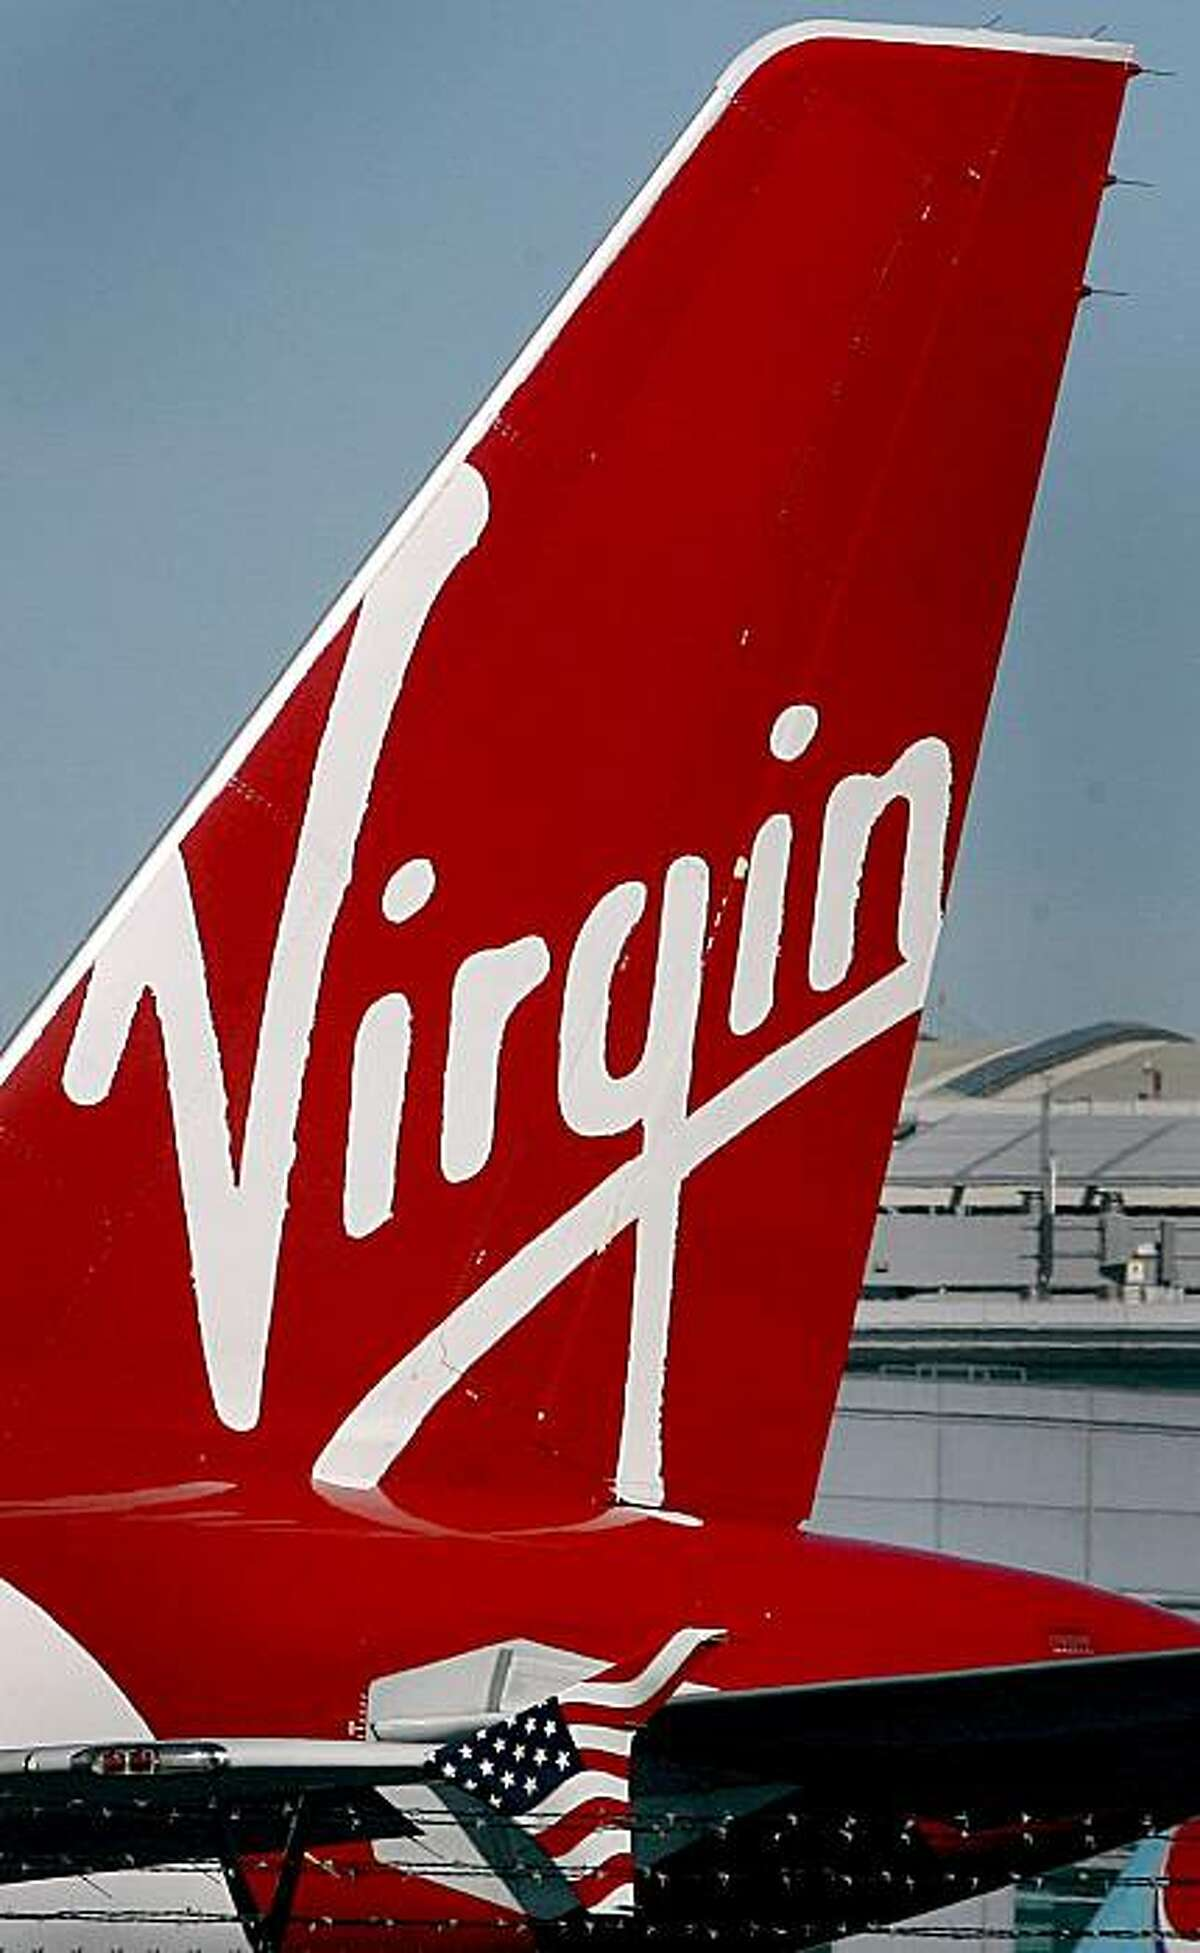 A Virgin America logo on one of its planes is photograrped at San Francisco International Airport near Millbrae, Calif. on Tuesday March 10, 2009.